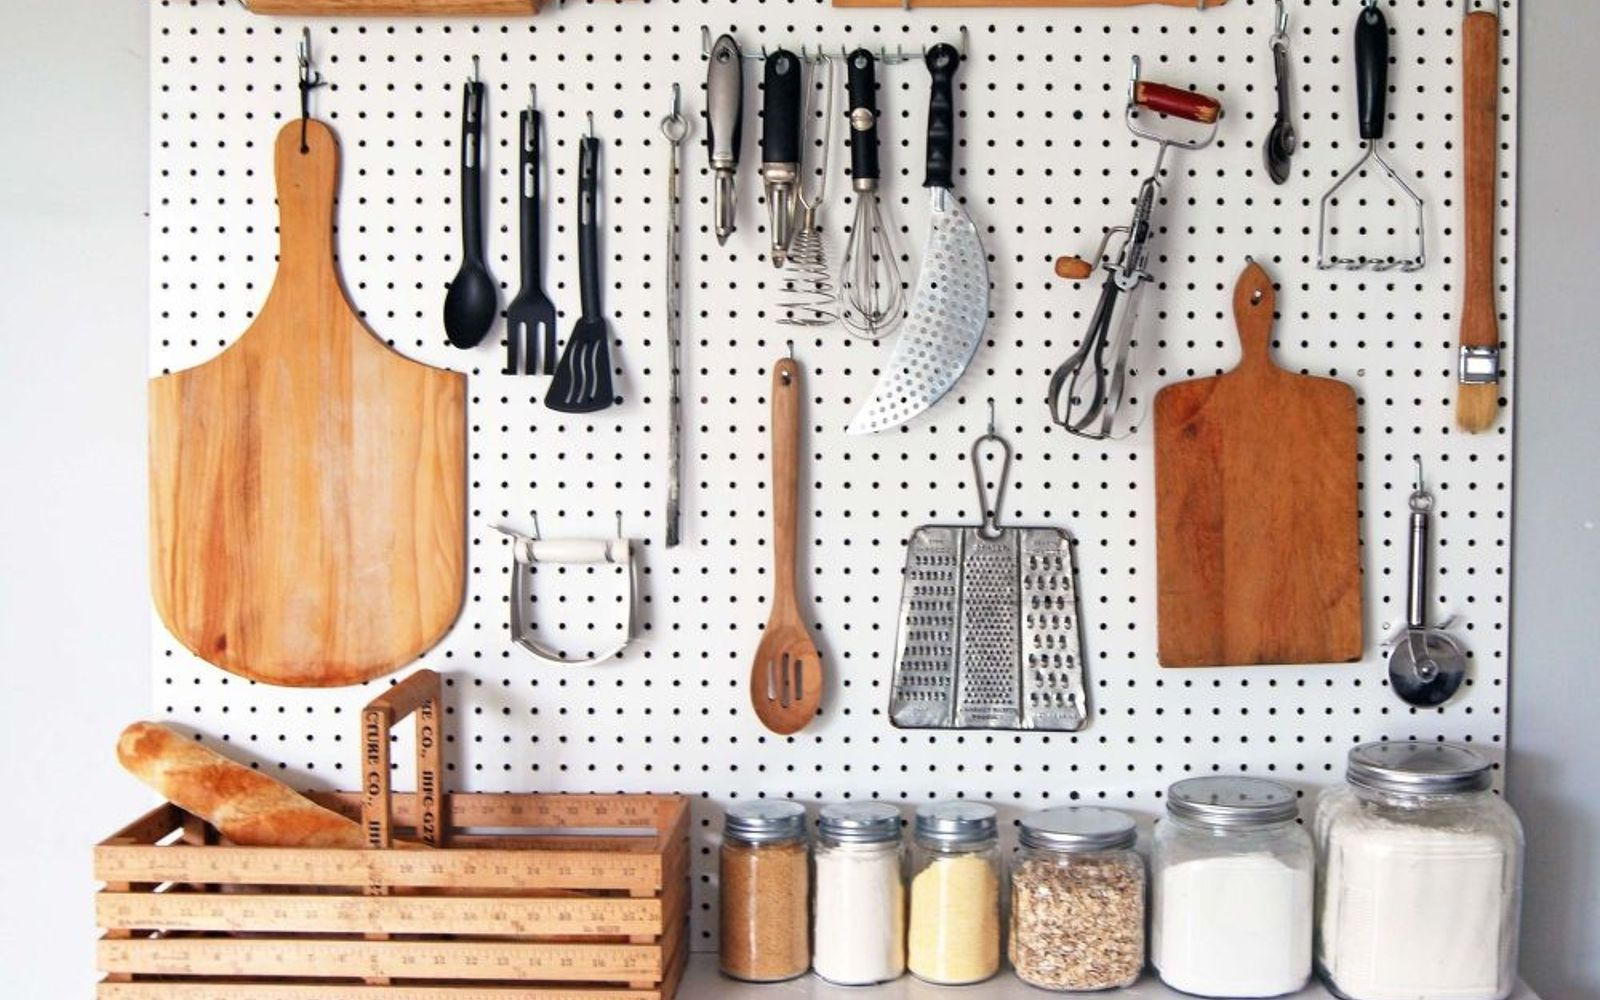 s 15 ways to organize every messy nook with pegboard, organizing, woodworking projects, Get perfect kitchen utensil organization